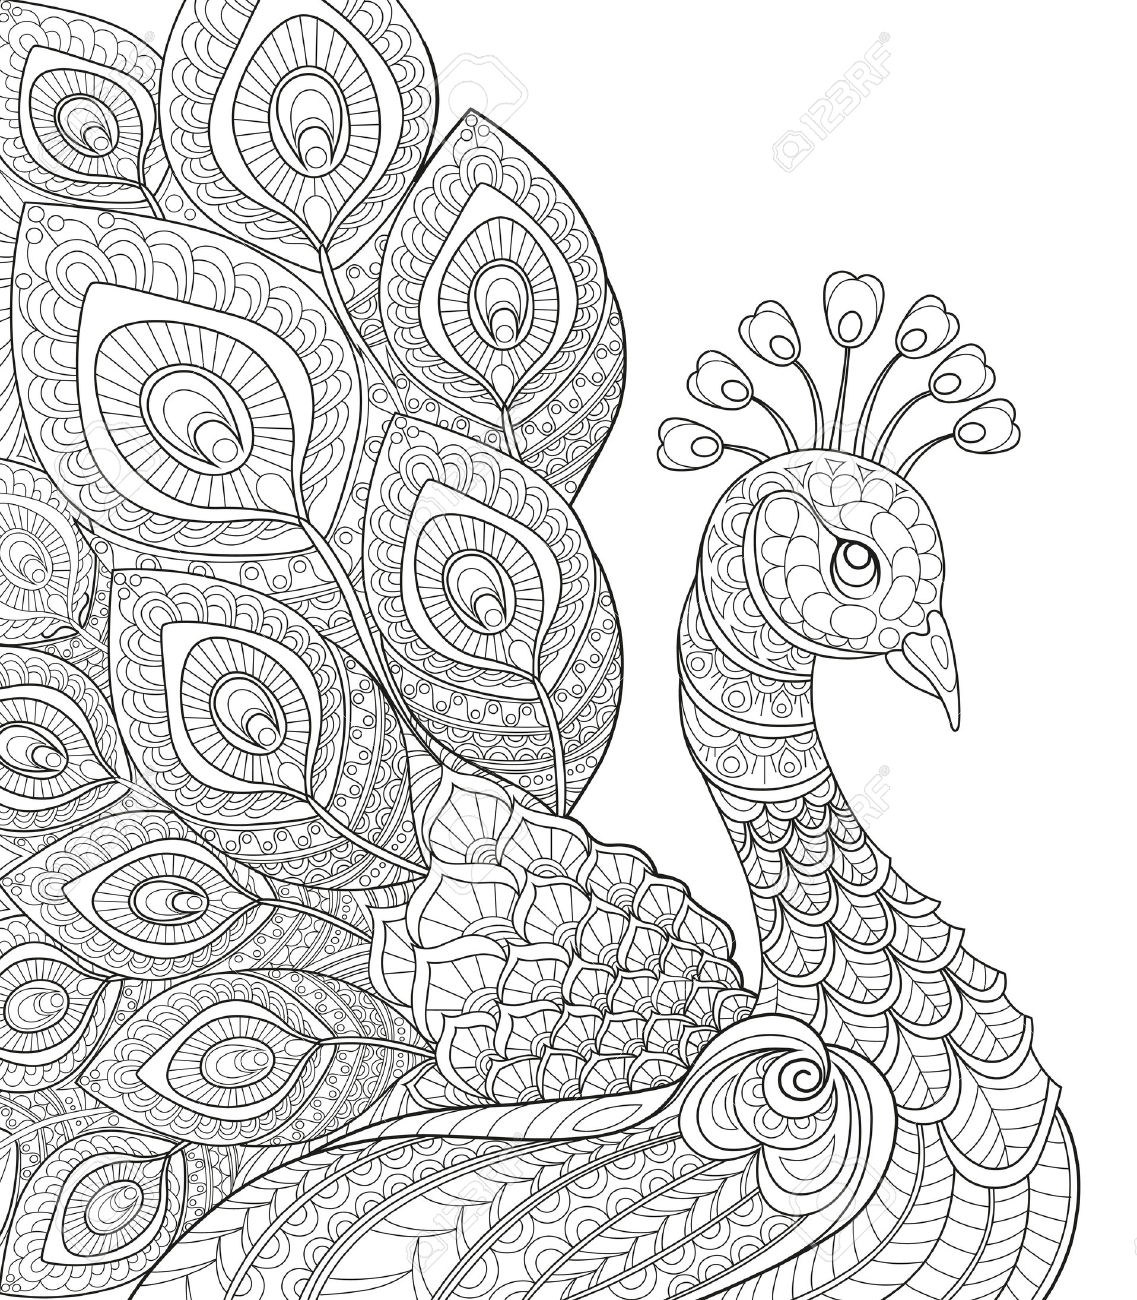 free Peacock at paintingvalley com. Drawing peacocks black and white